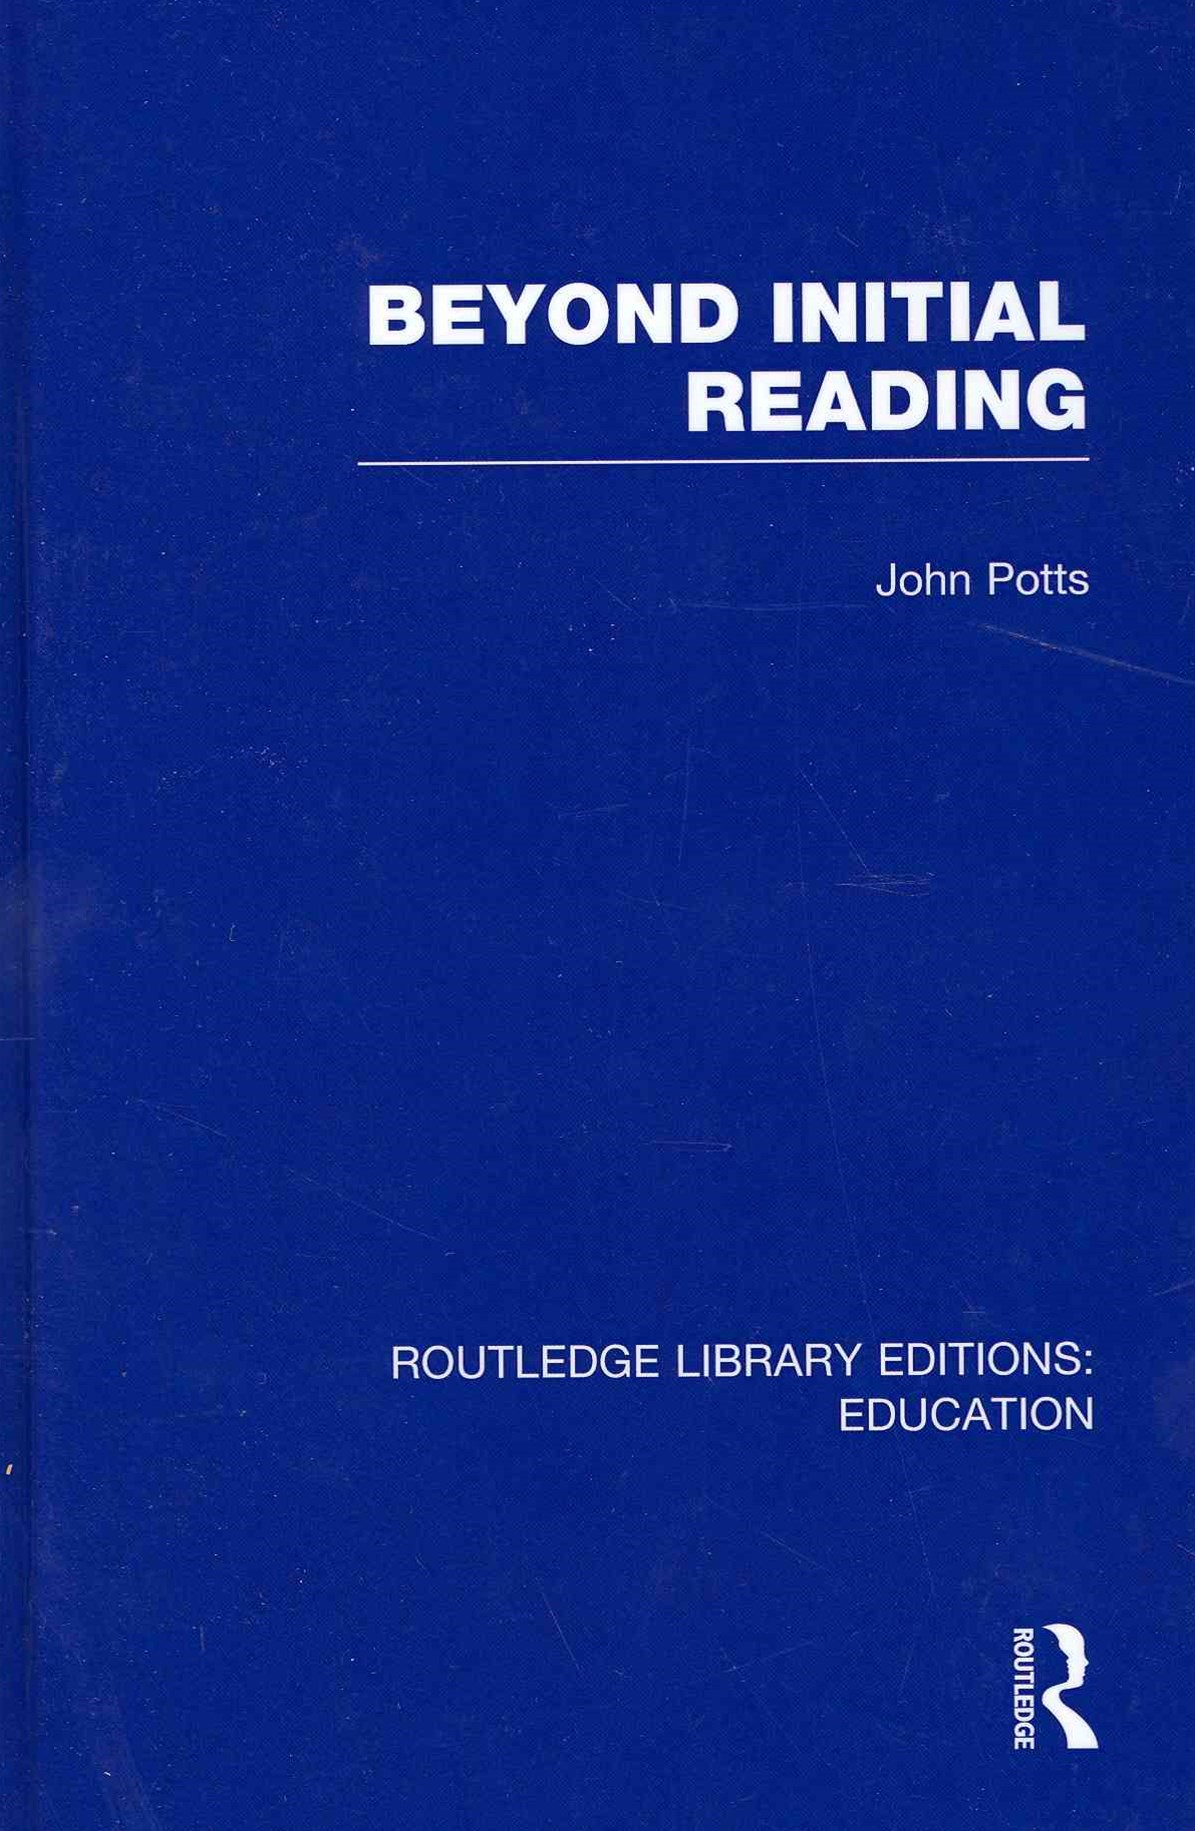 Beyond Initial Reading